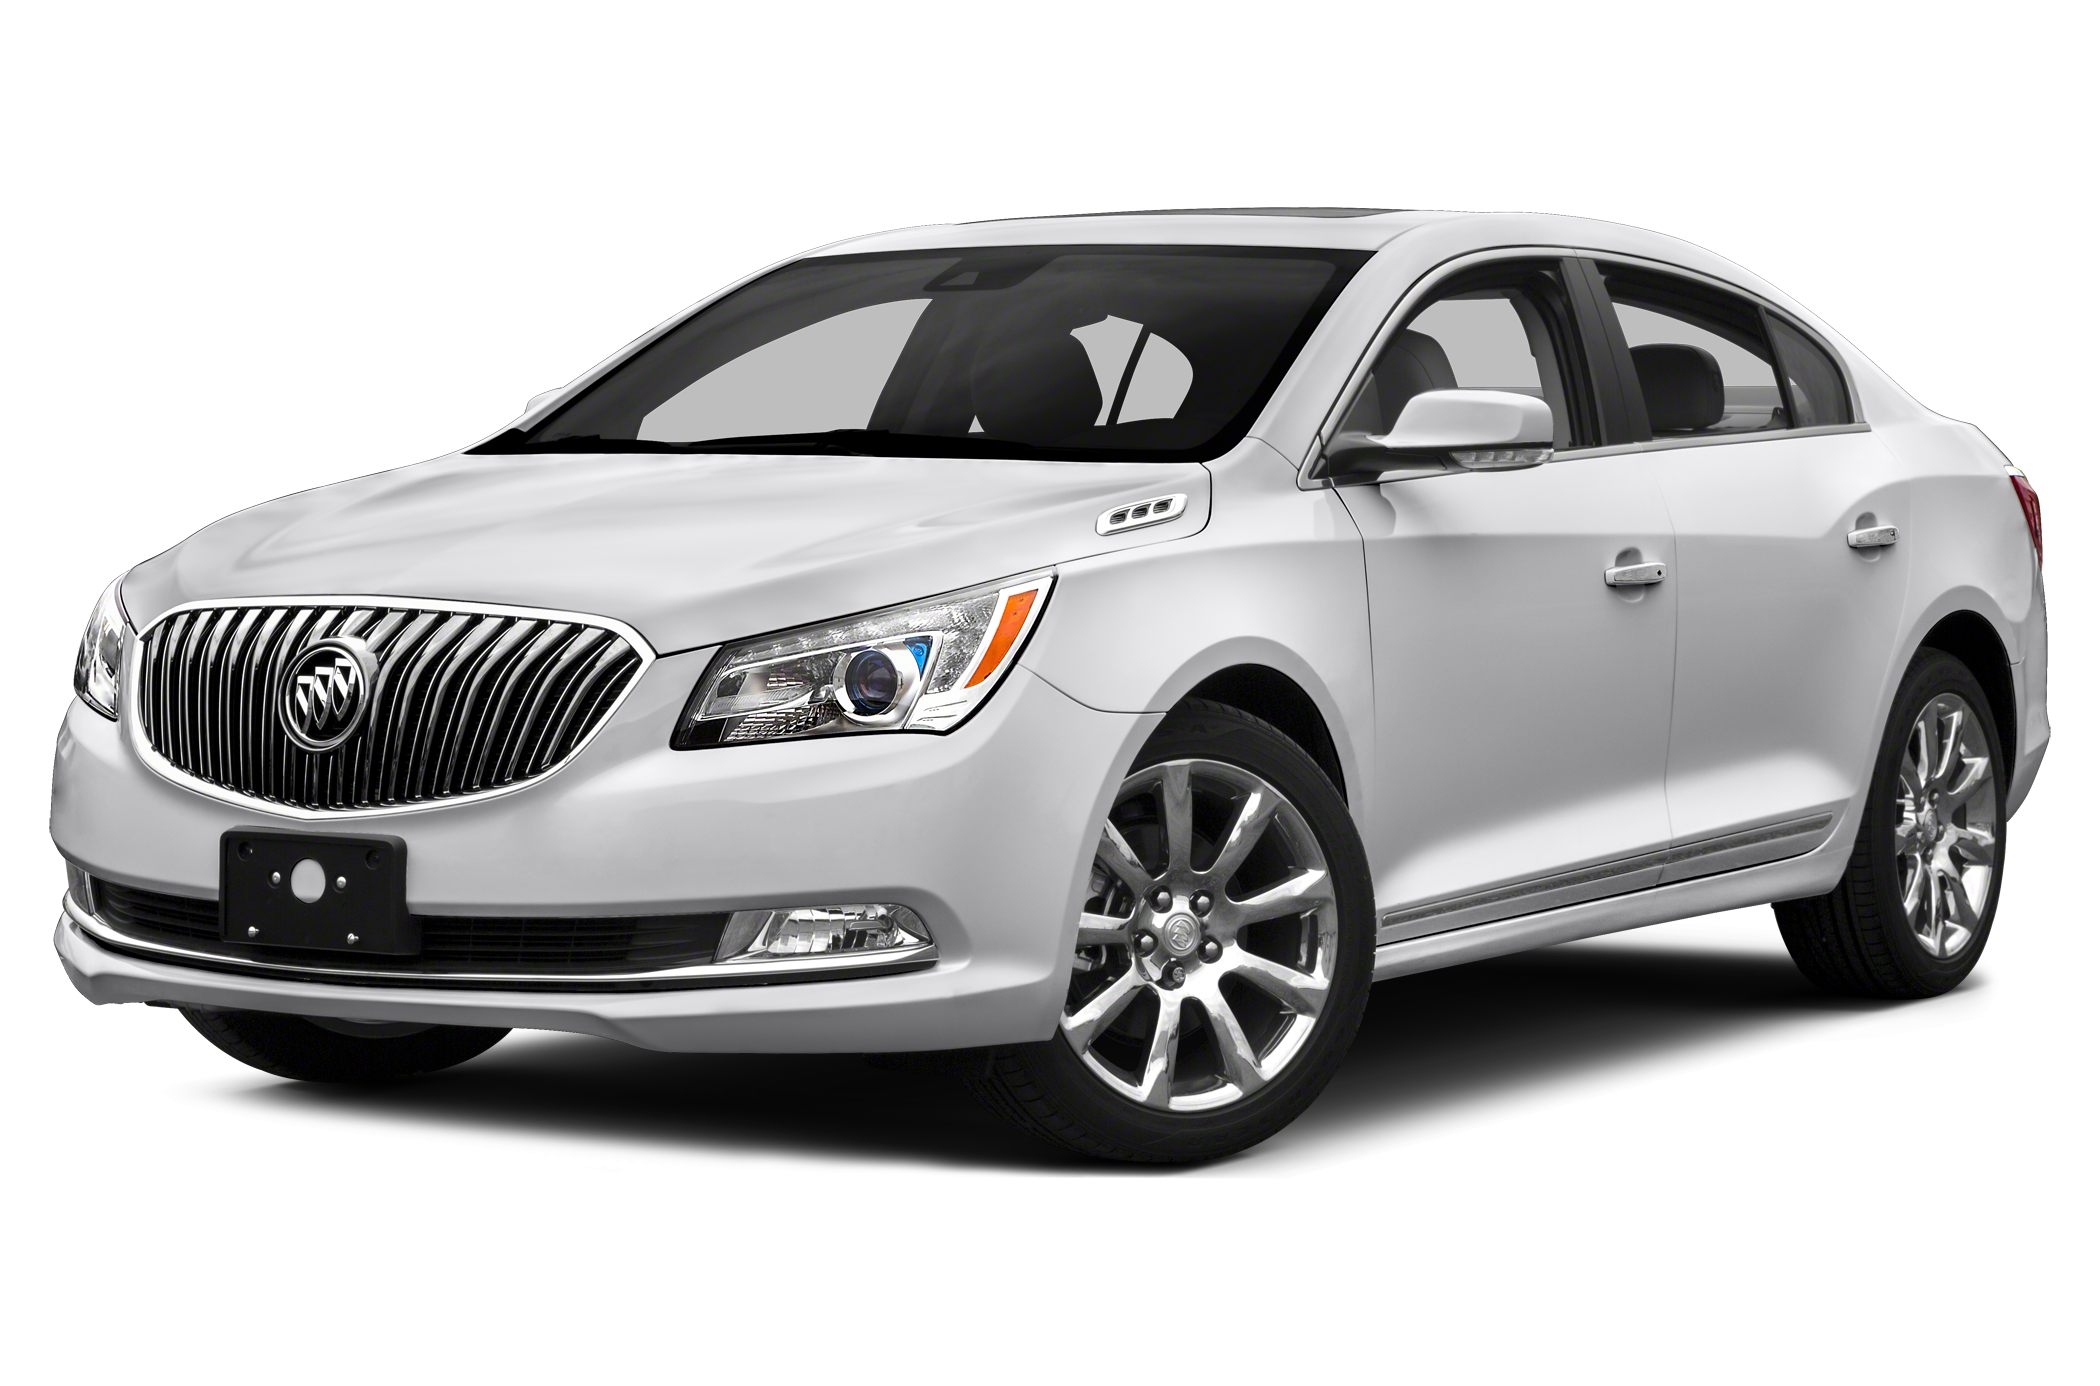 2014 Buick LaCrosse Leather Sedan for sale in Huntersville for $0 with 0 miles